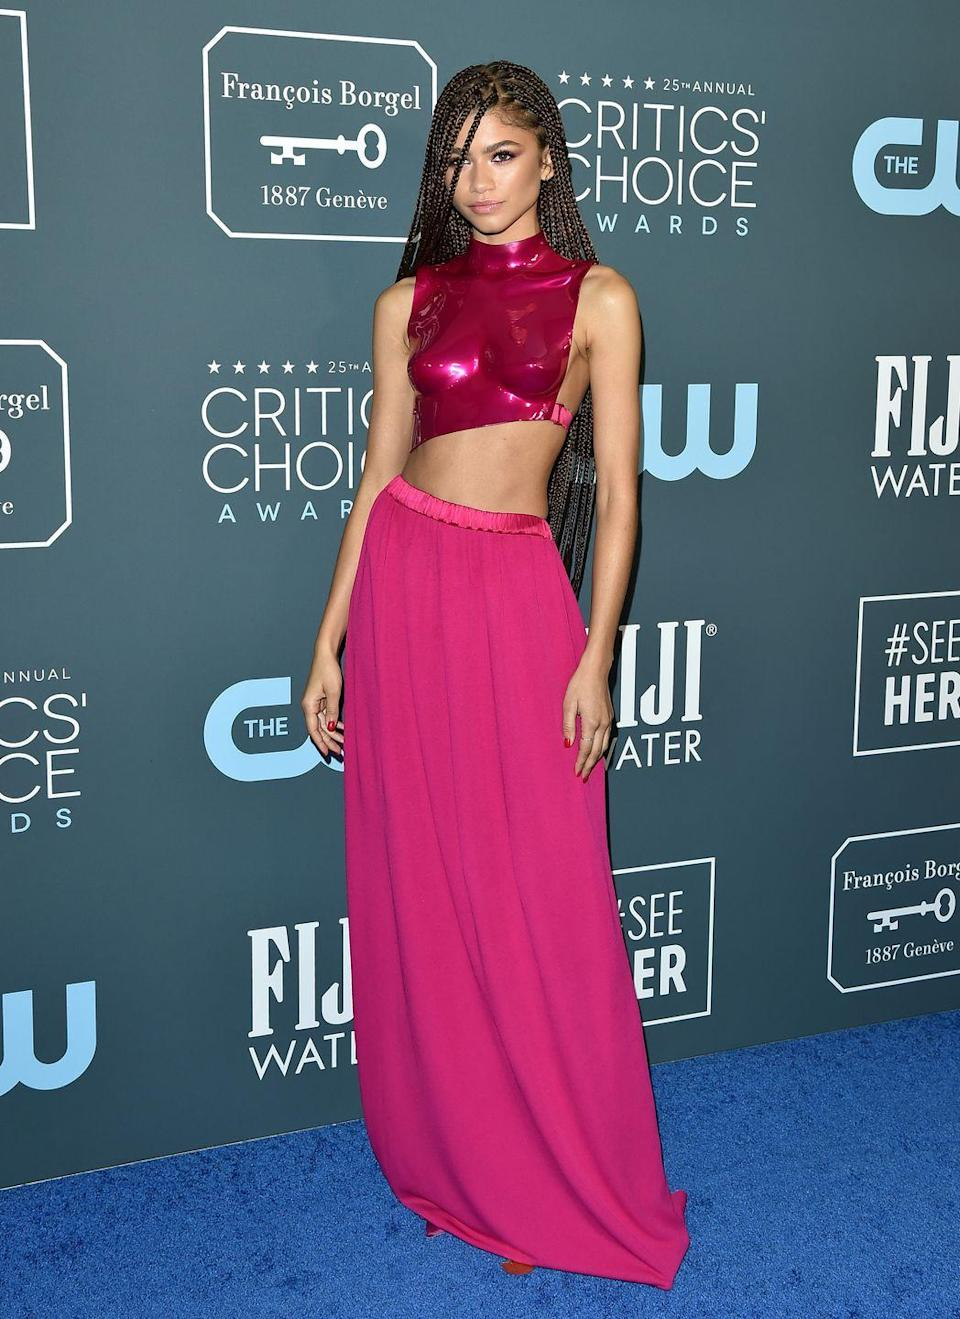 <p>The actress and singer attended the Critics' Choice Awards wearing Tom Ford from head to toe.</p>